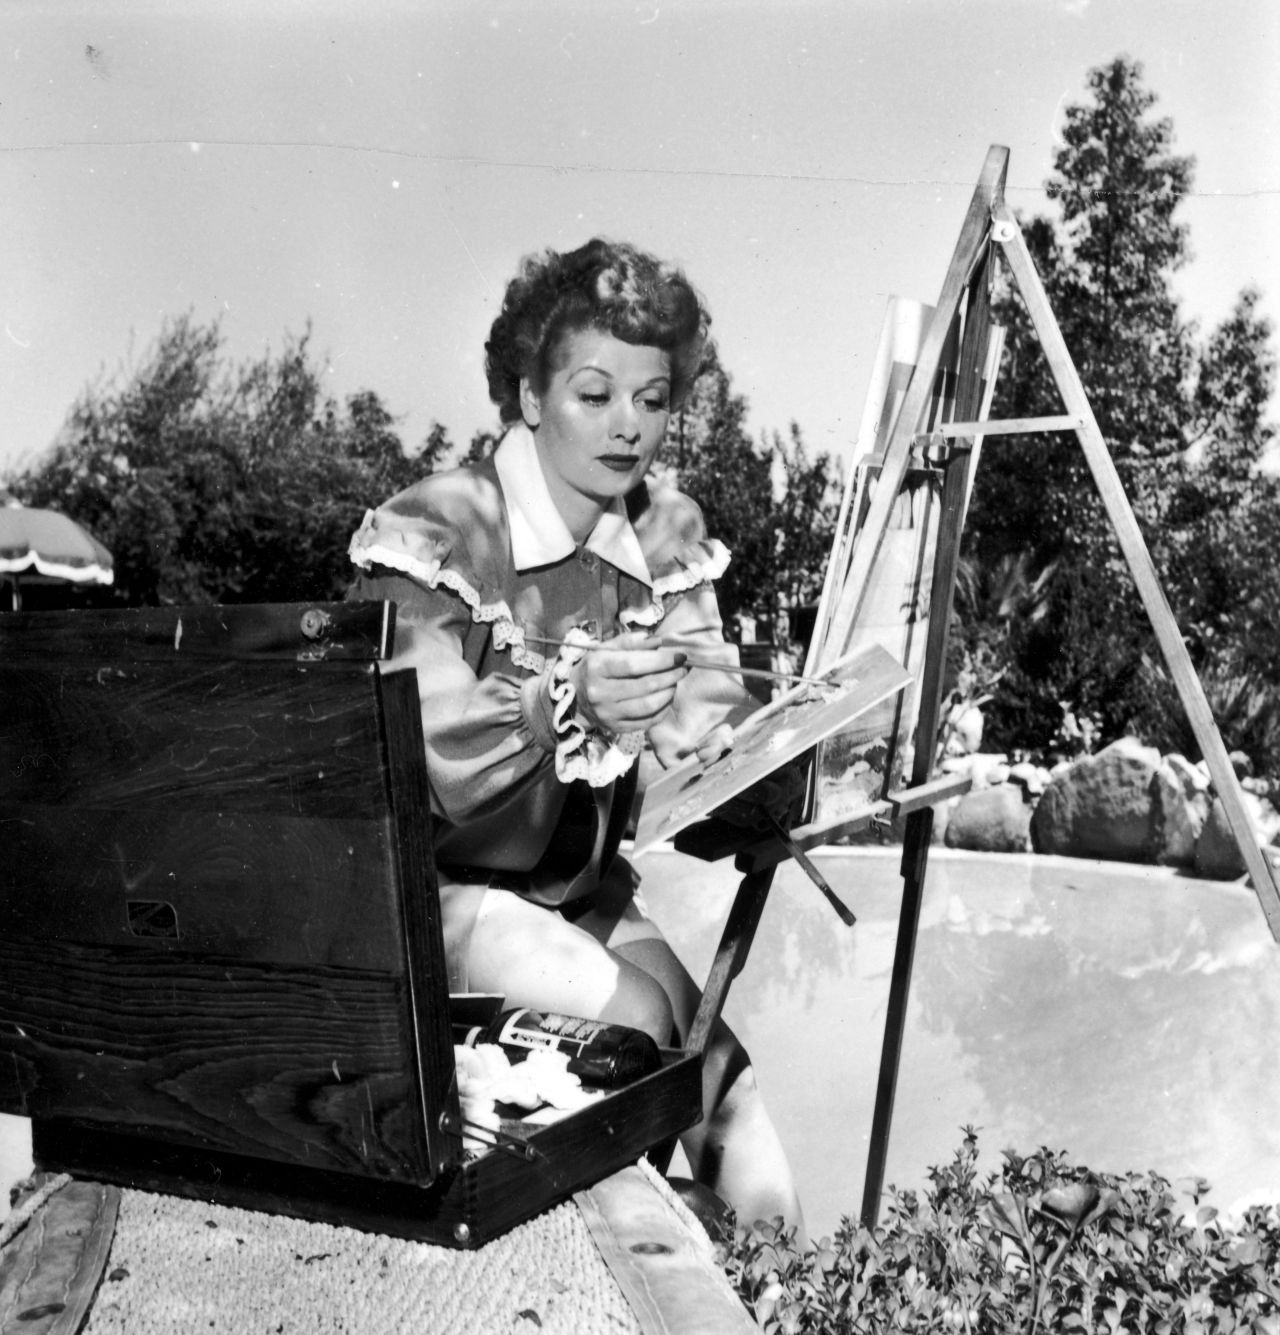 gallery-1436470304-lucy-painting-archive-photos.jpg